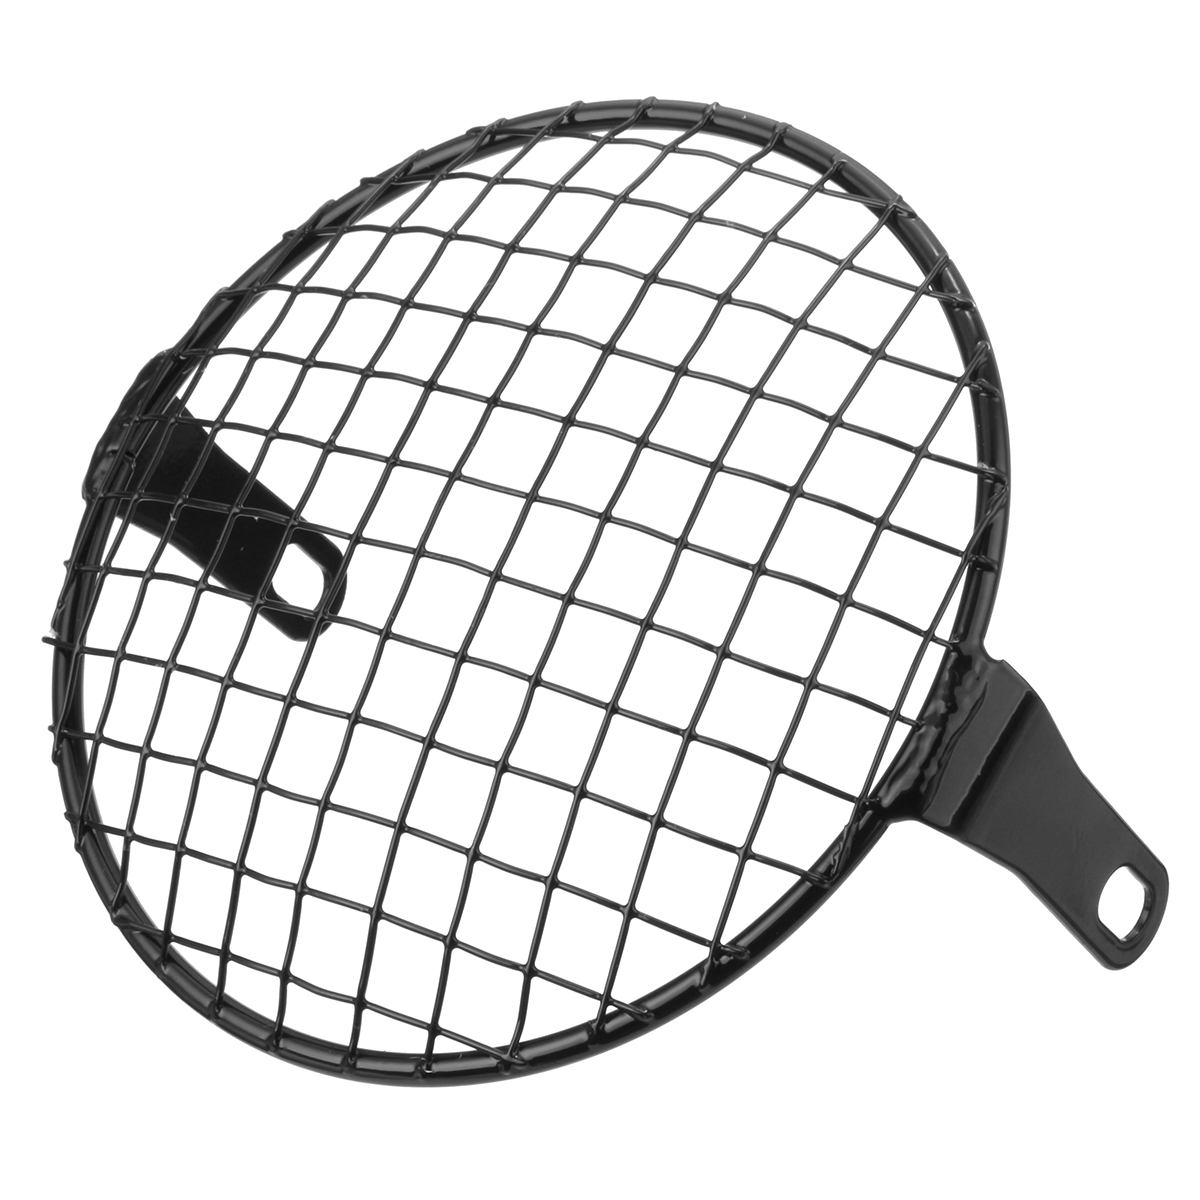 7inch Motorcycle Headlight Mesh Grill Mask Protector Guard Square/Rhombus Cover